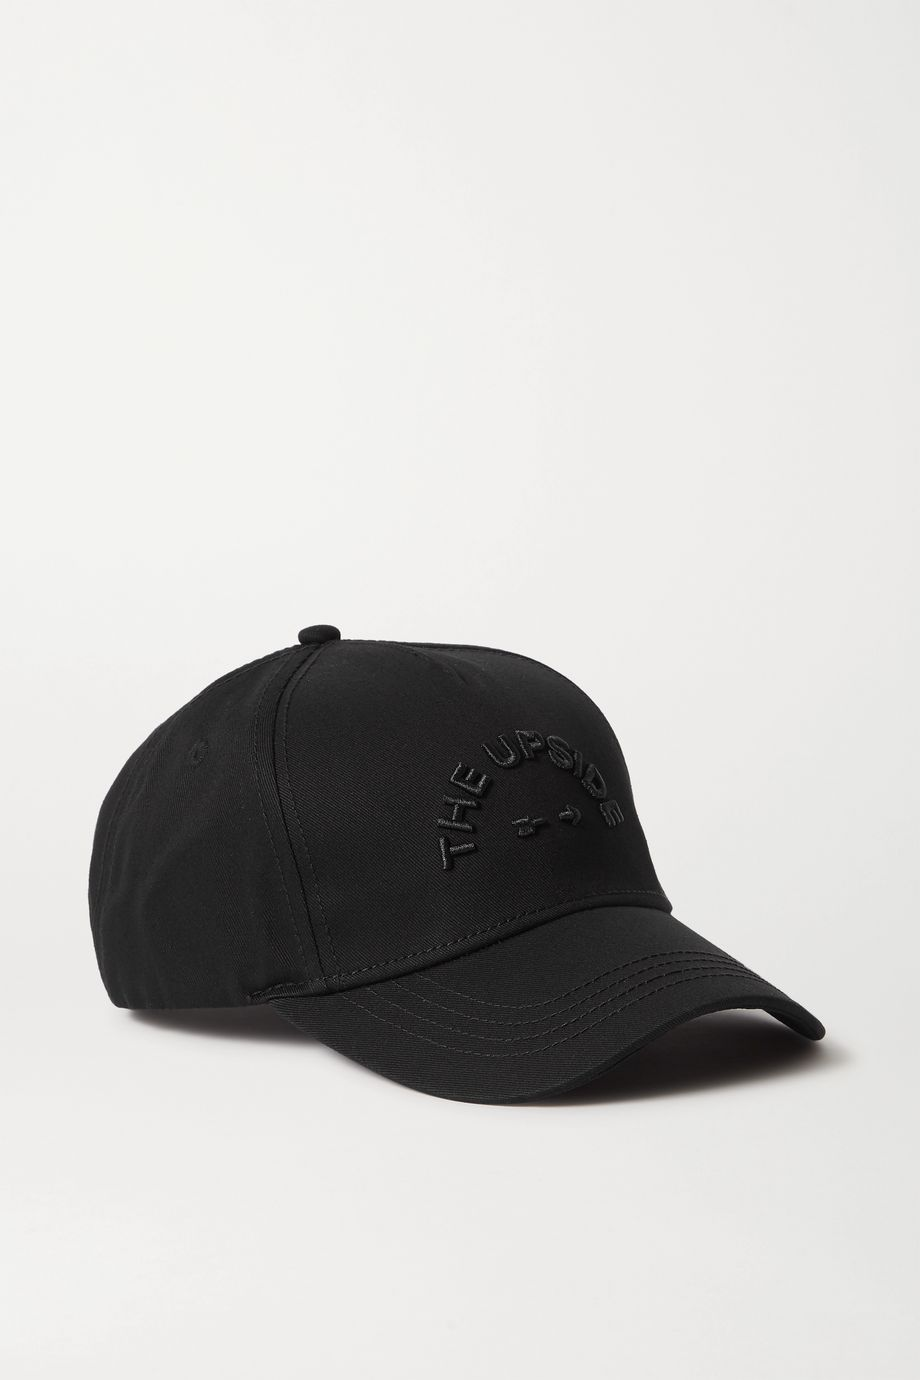 The Upside Embroidered cotton-twill baseball cap